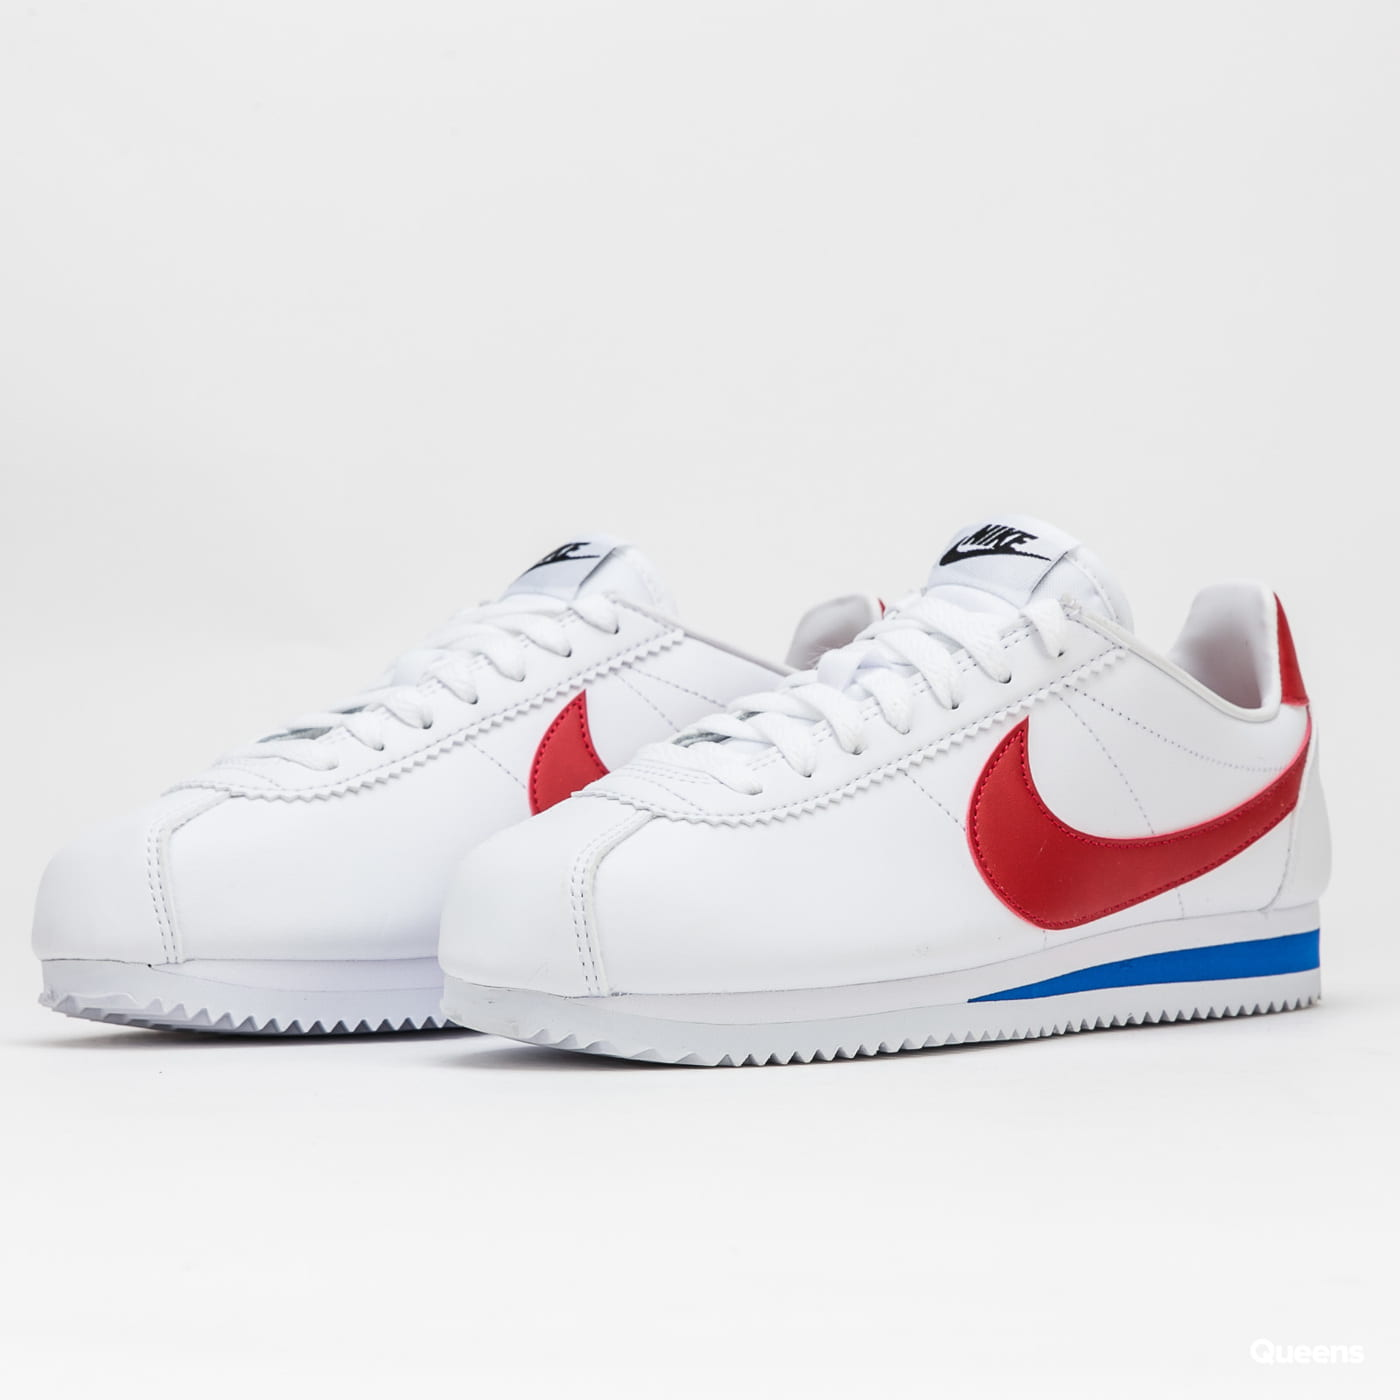 Nike WMNS Classic Cortez Leather white / varsity red